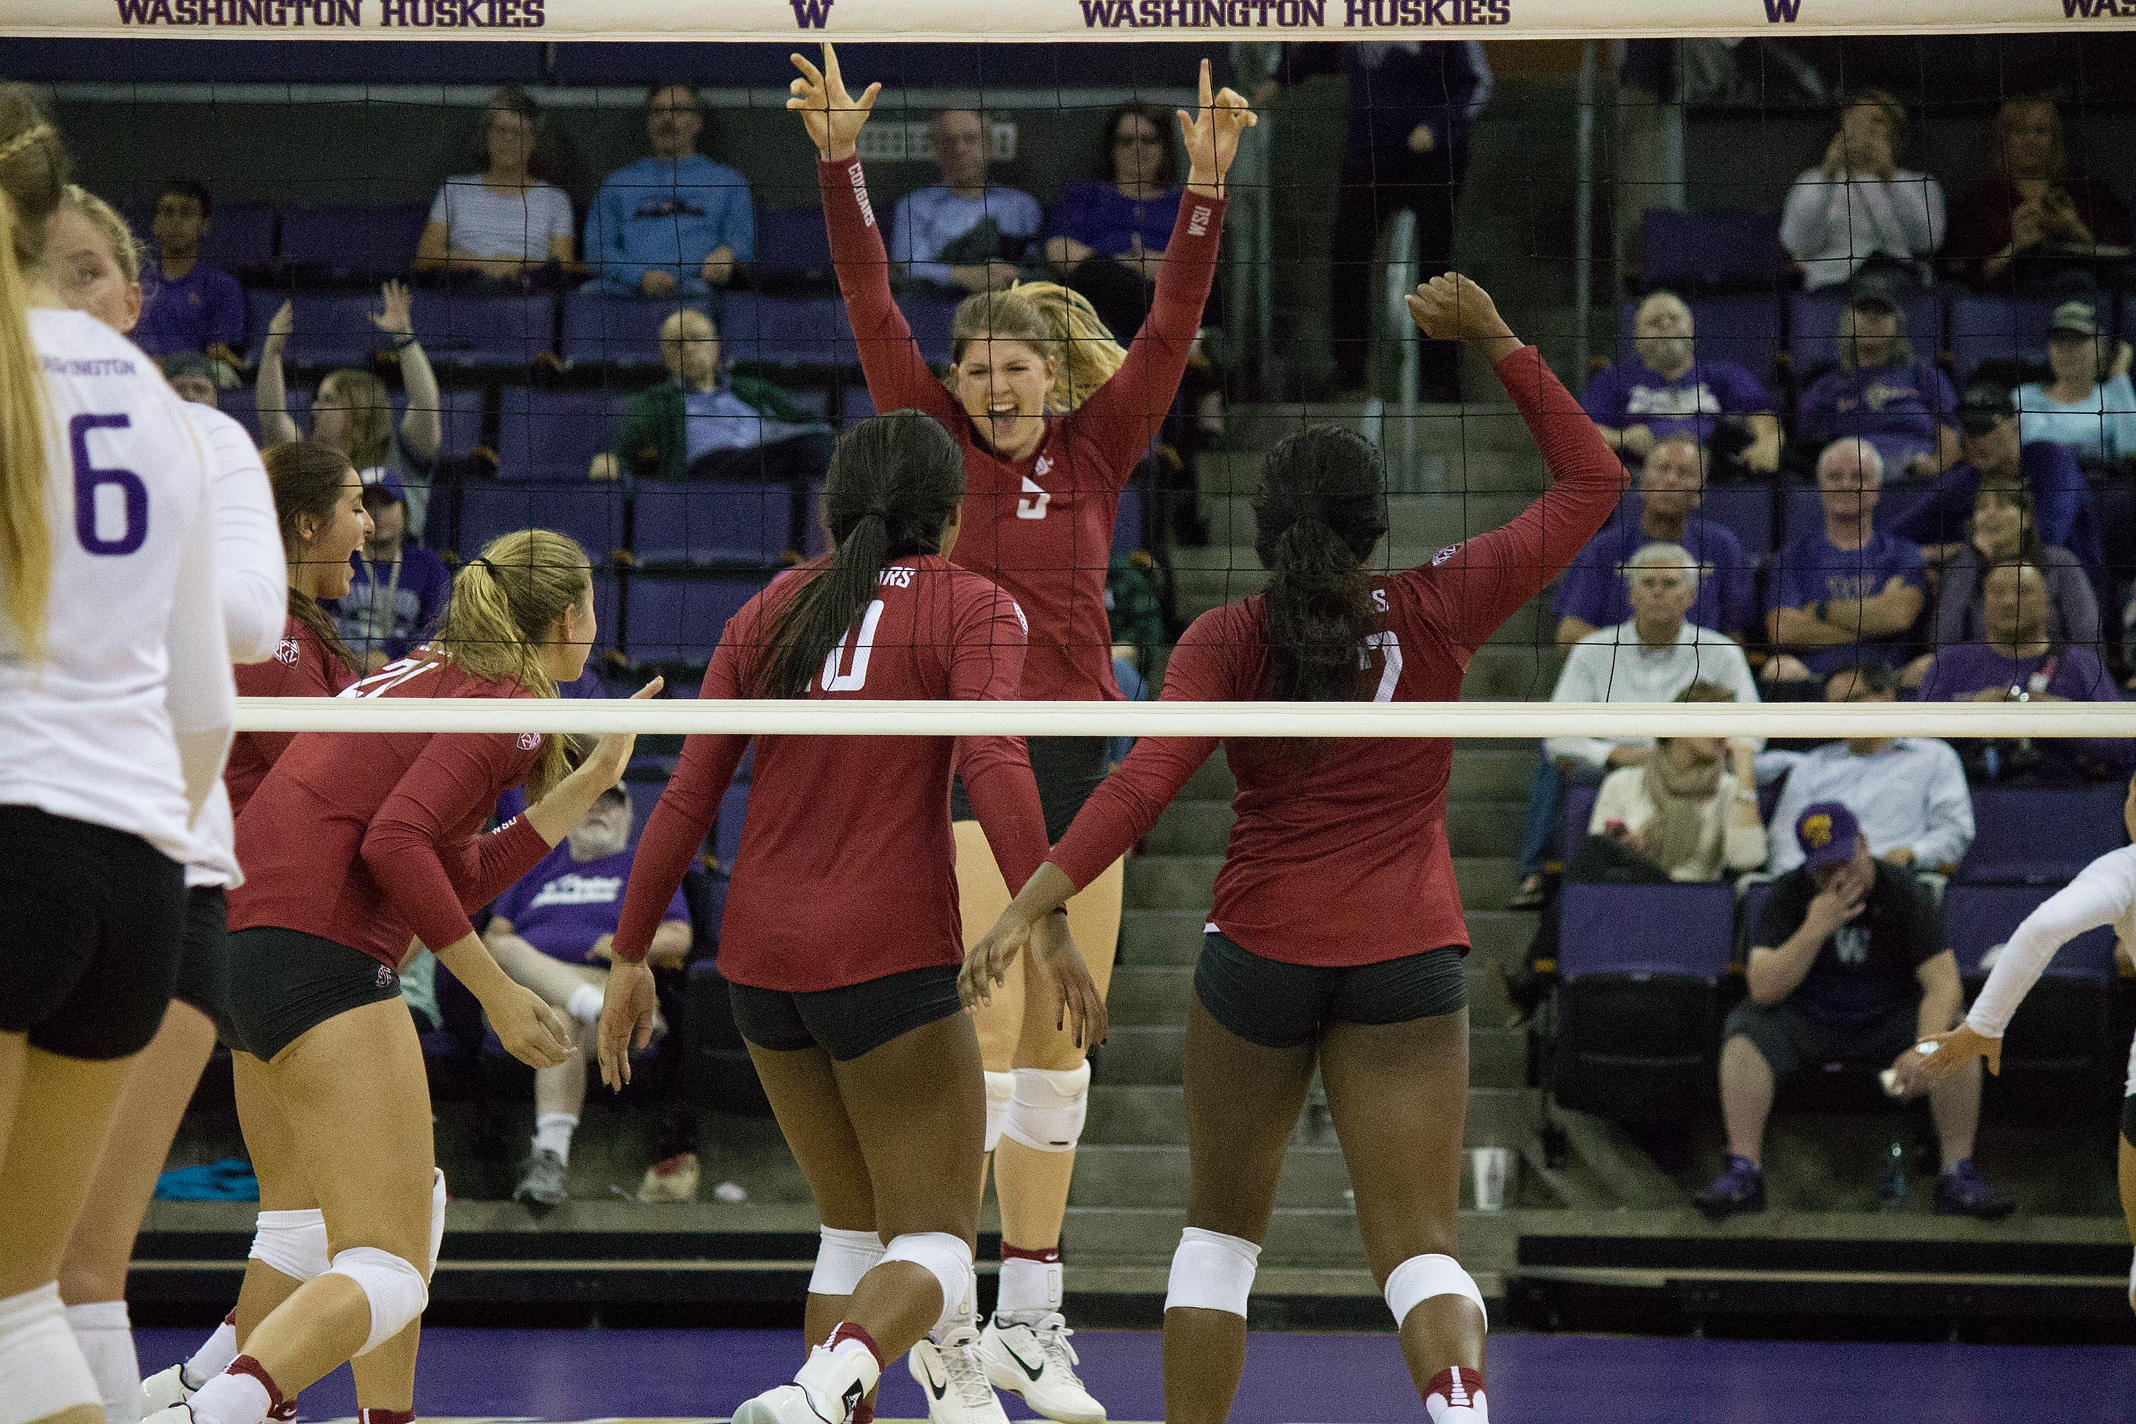 woodford cougar women The latest video uploads for washington state cougars volleyball.